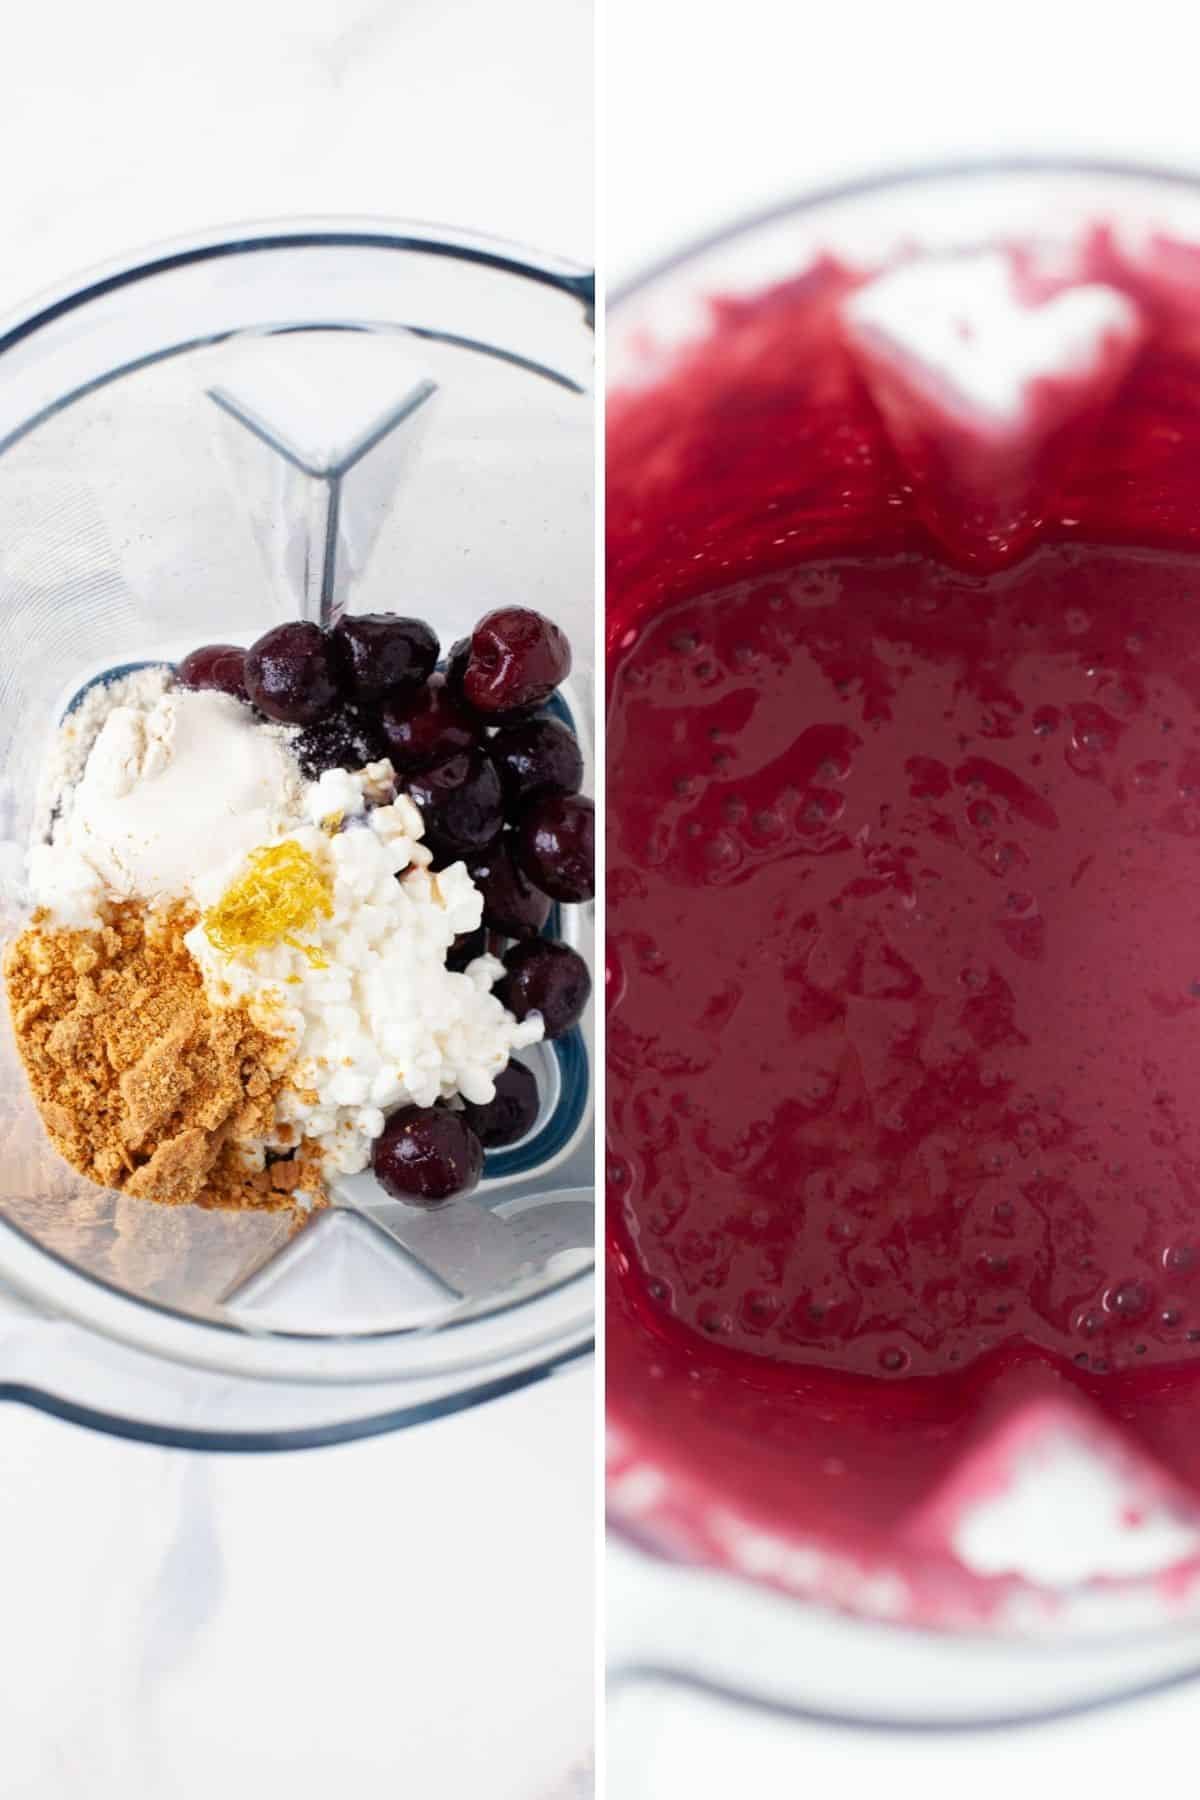 cherry smoothie bowl ingredients top view of blender with cherries, cottage cheese, protein powder, graham crackers